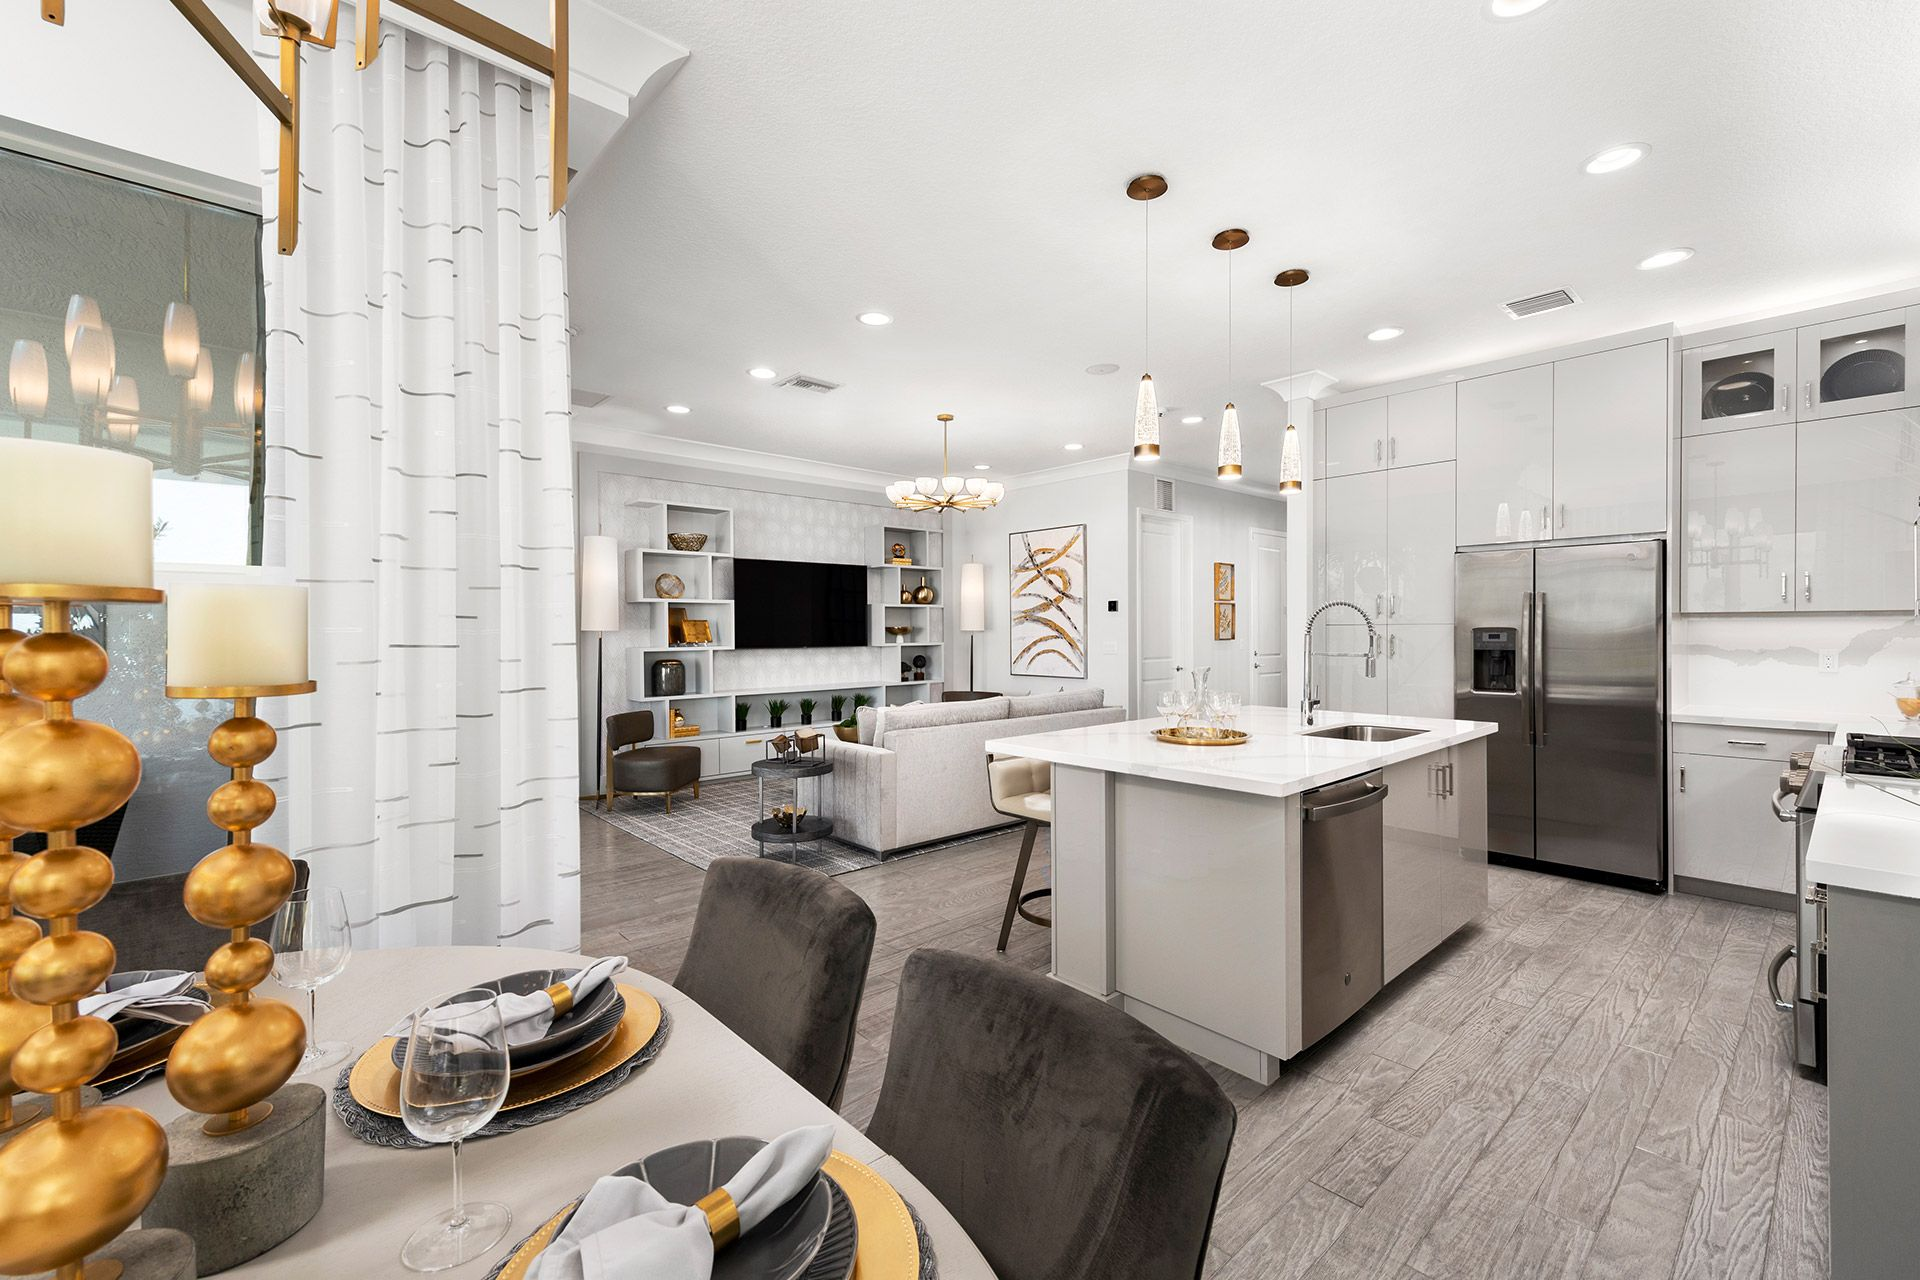 Kitchen featured in the Isabella By GL Homes in Tampa-St. Petersburg, FL